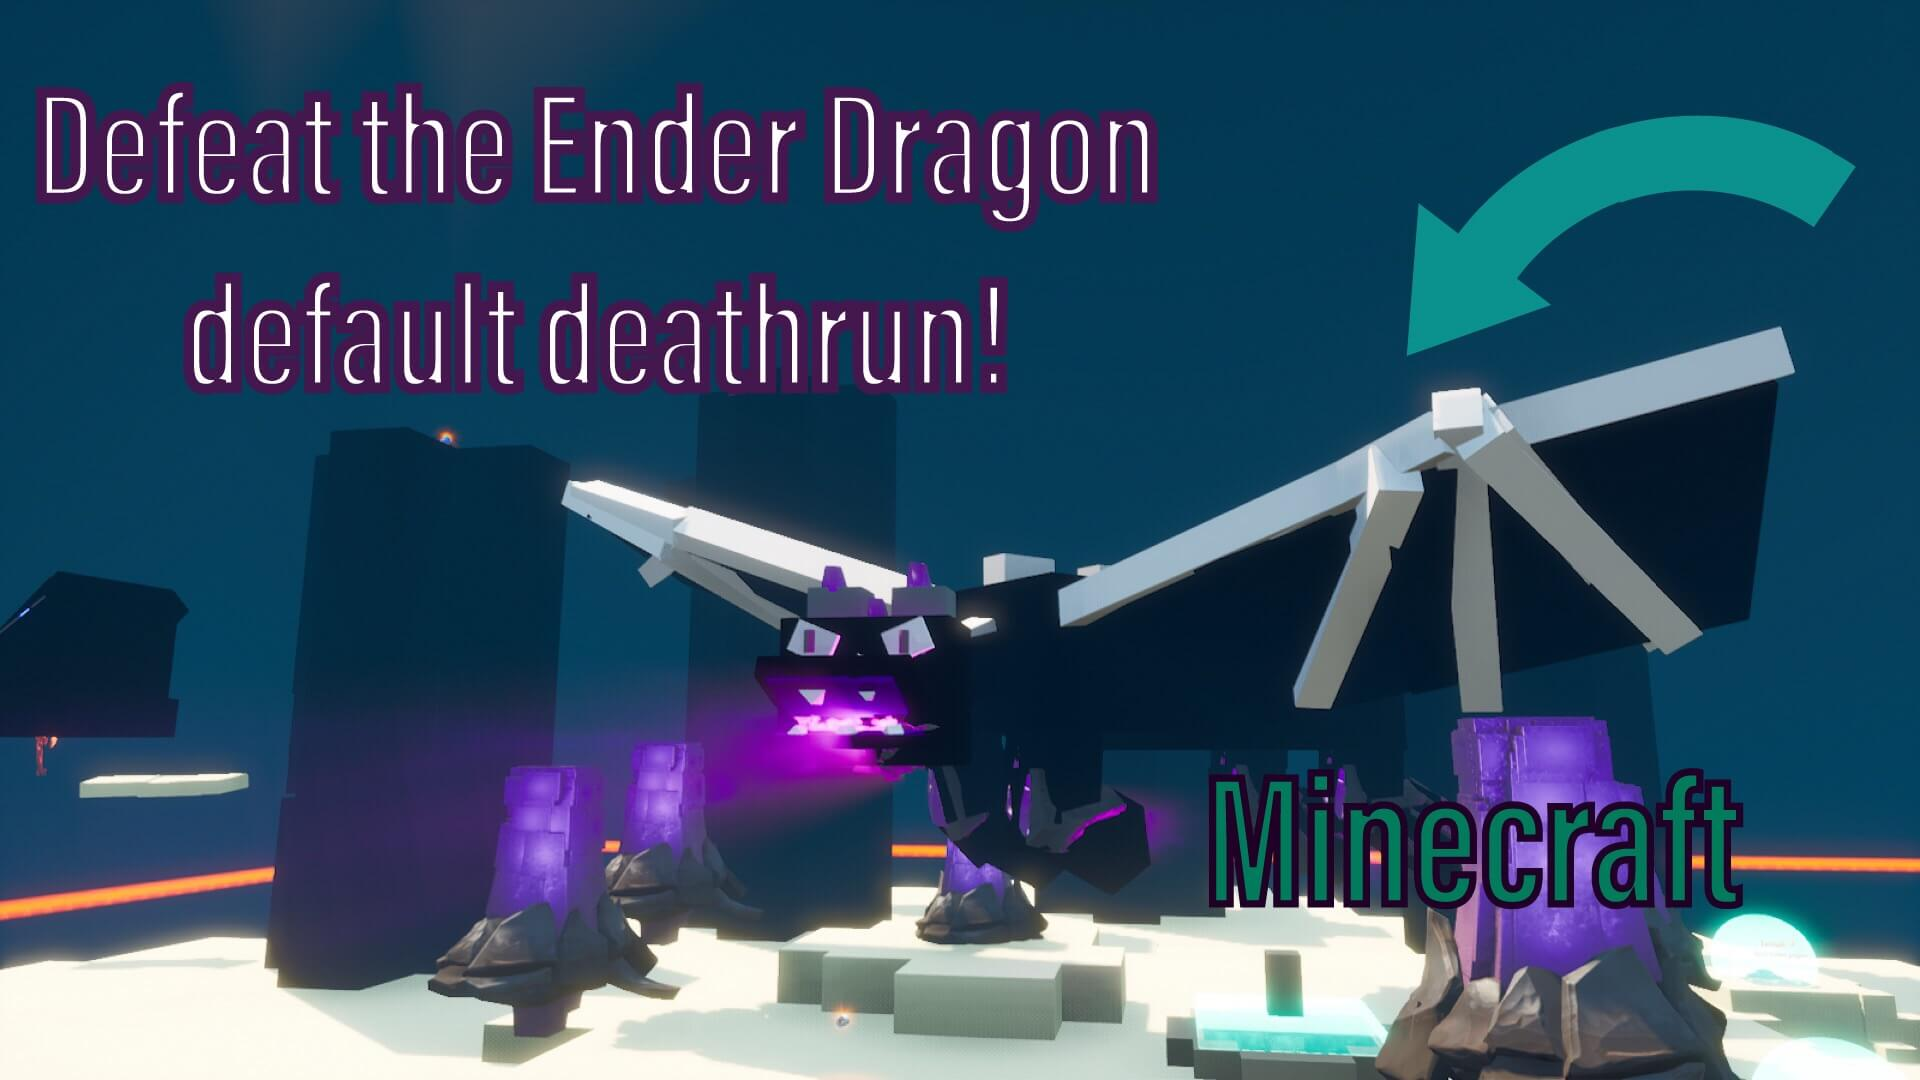 DEFEAT THE ENDER DRAGON DEFAULT DEATHRUN